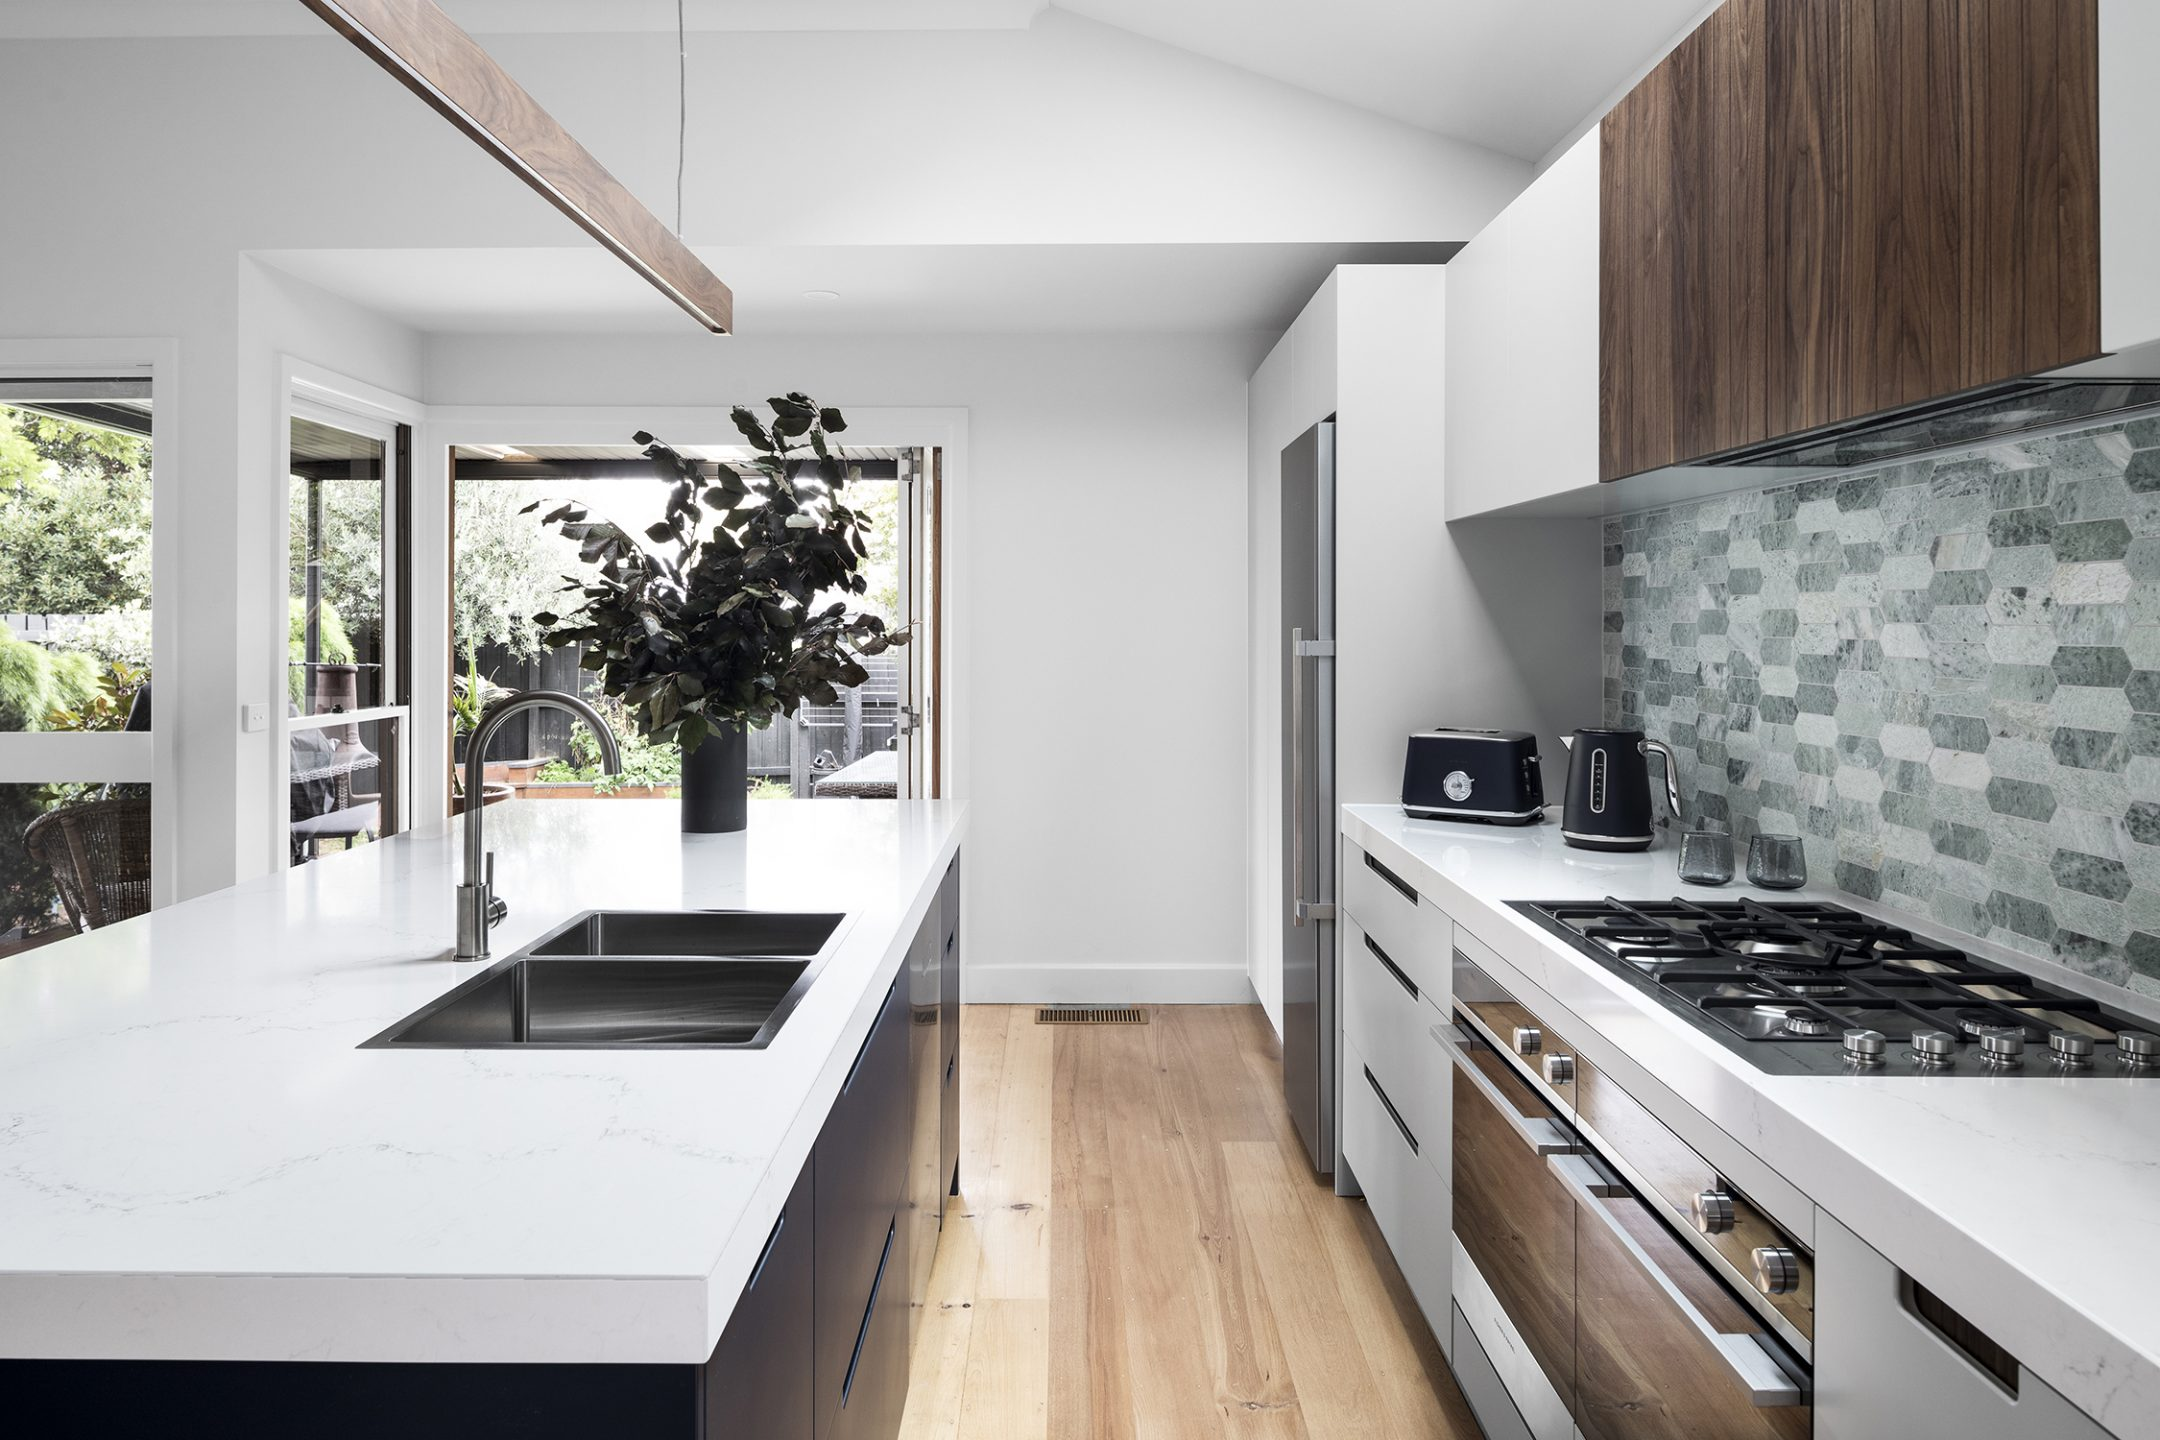 Kitchen Renovations Melbourne & VIC | On Time, On Budget ...